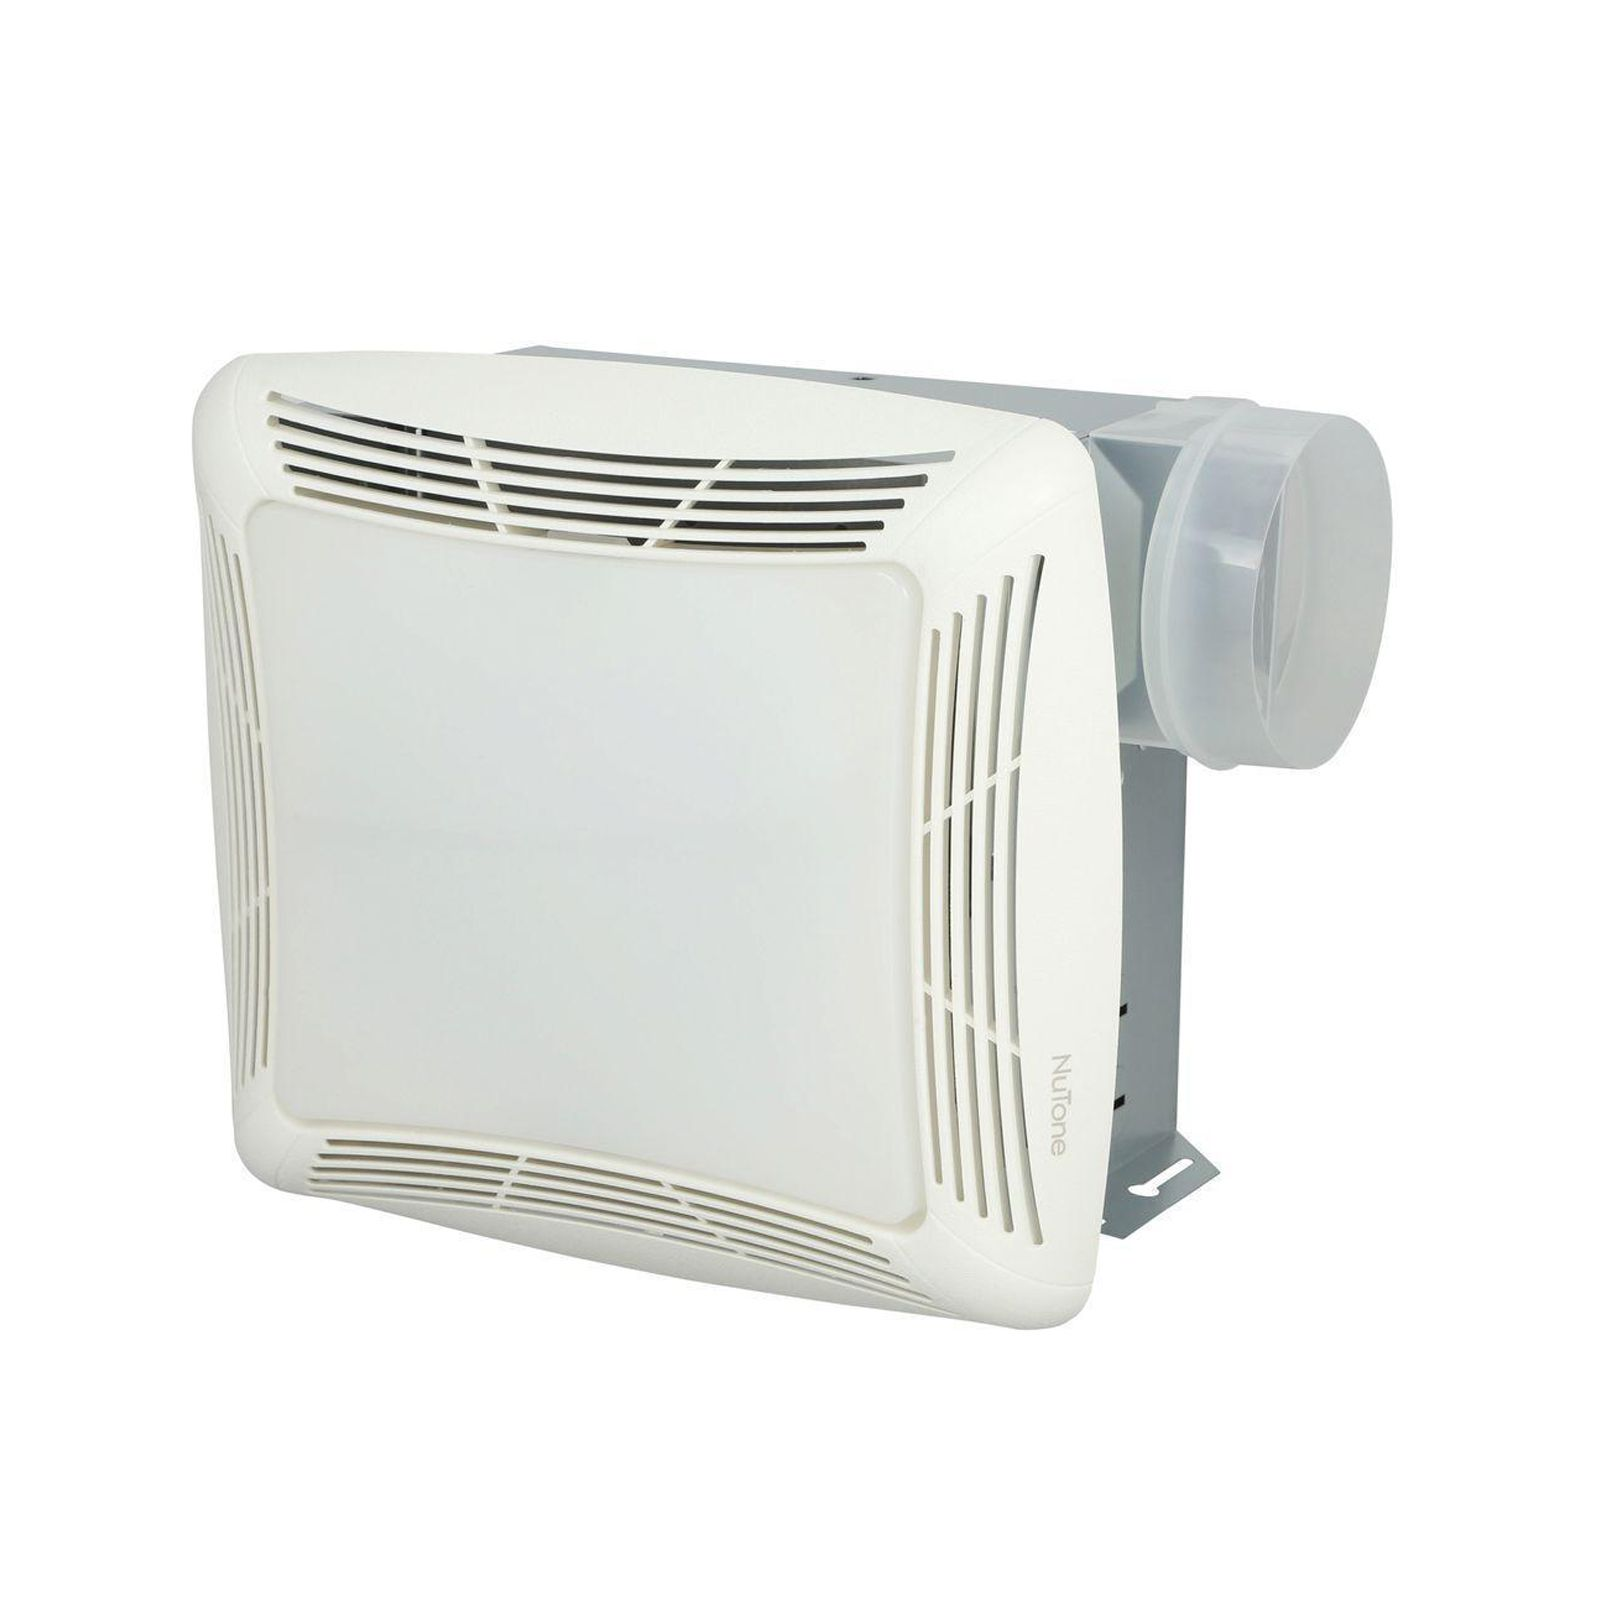 NuTone 763RL769RLA - Broan  - Exhaust Fan Housing for 763RLNB, 769RFBT, 769RLB, Finish Trim Kits